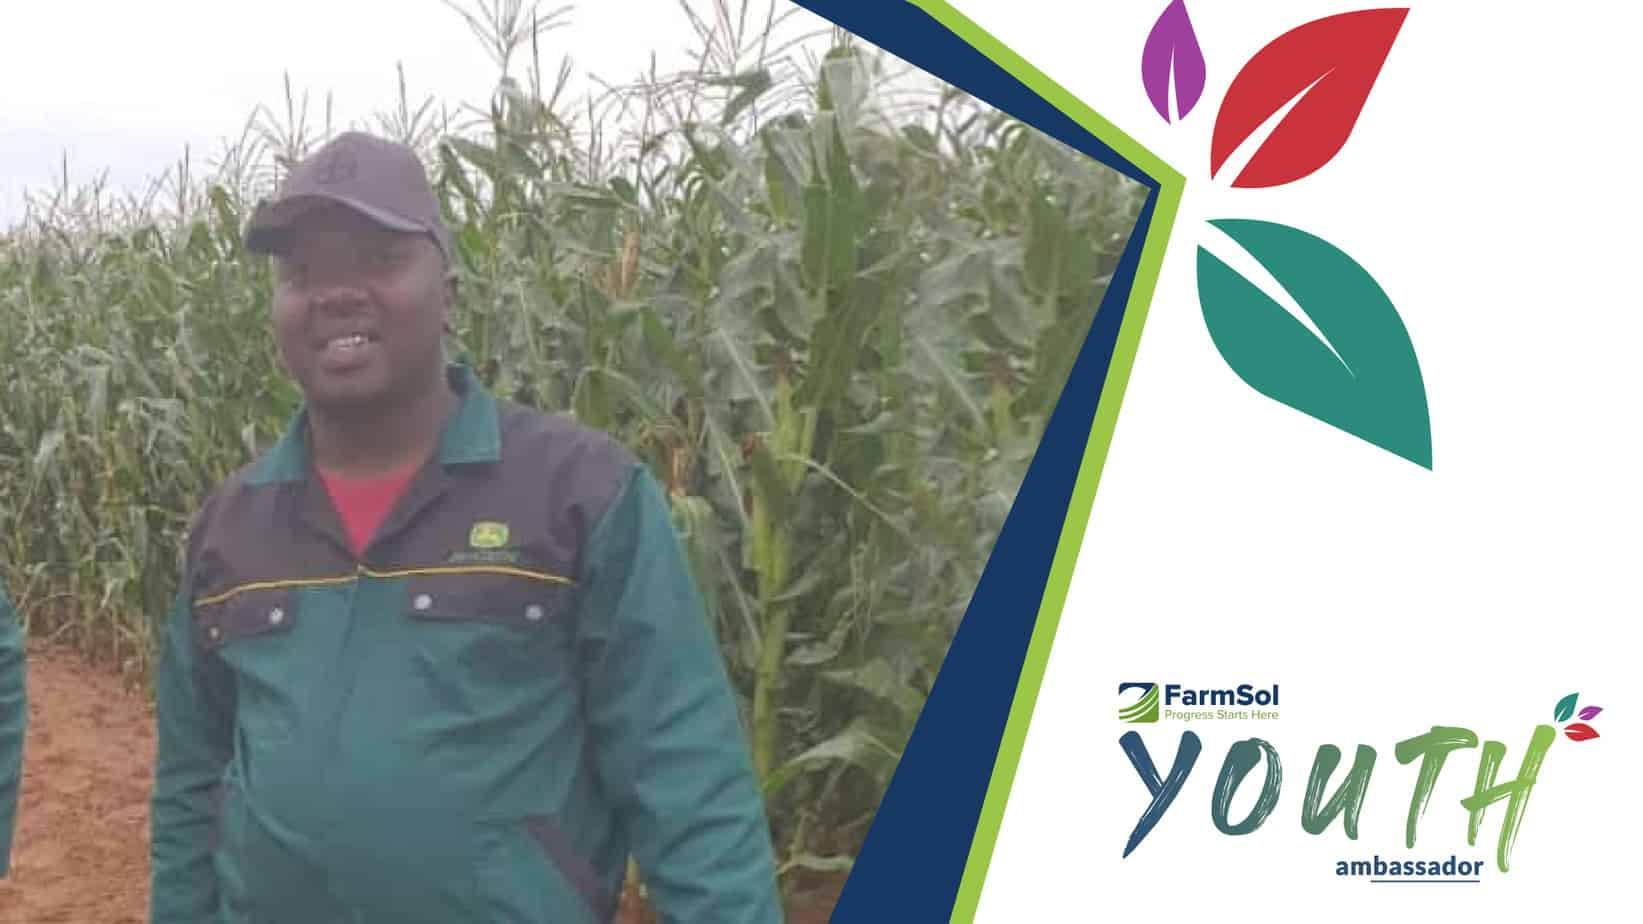 Benjamin Mbele is one of the rising farm stars participating in the FarmSol Youth Ambassador programme. Photo: Supplied/Food For Mzansi